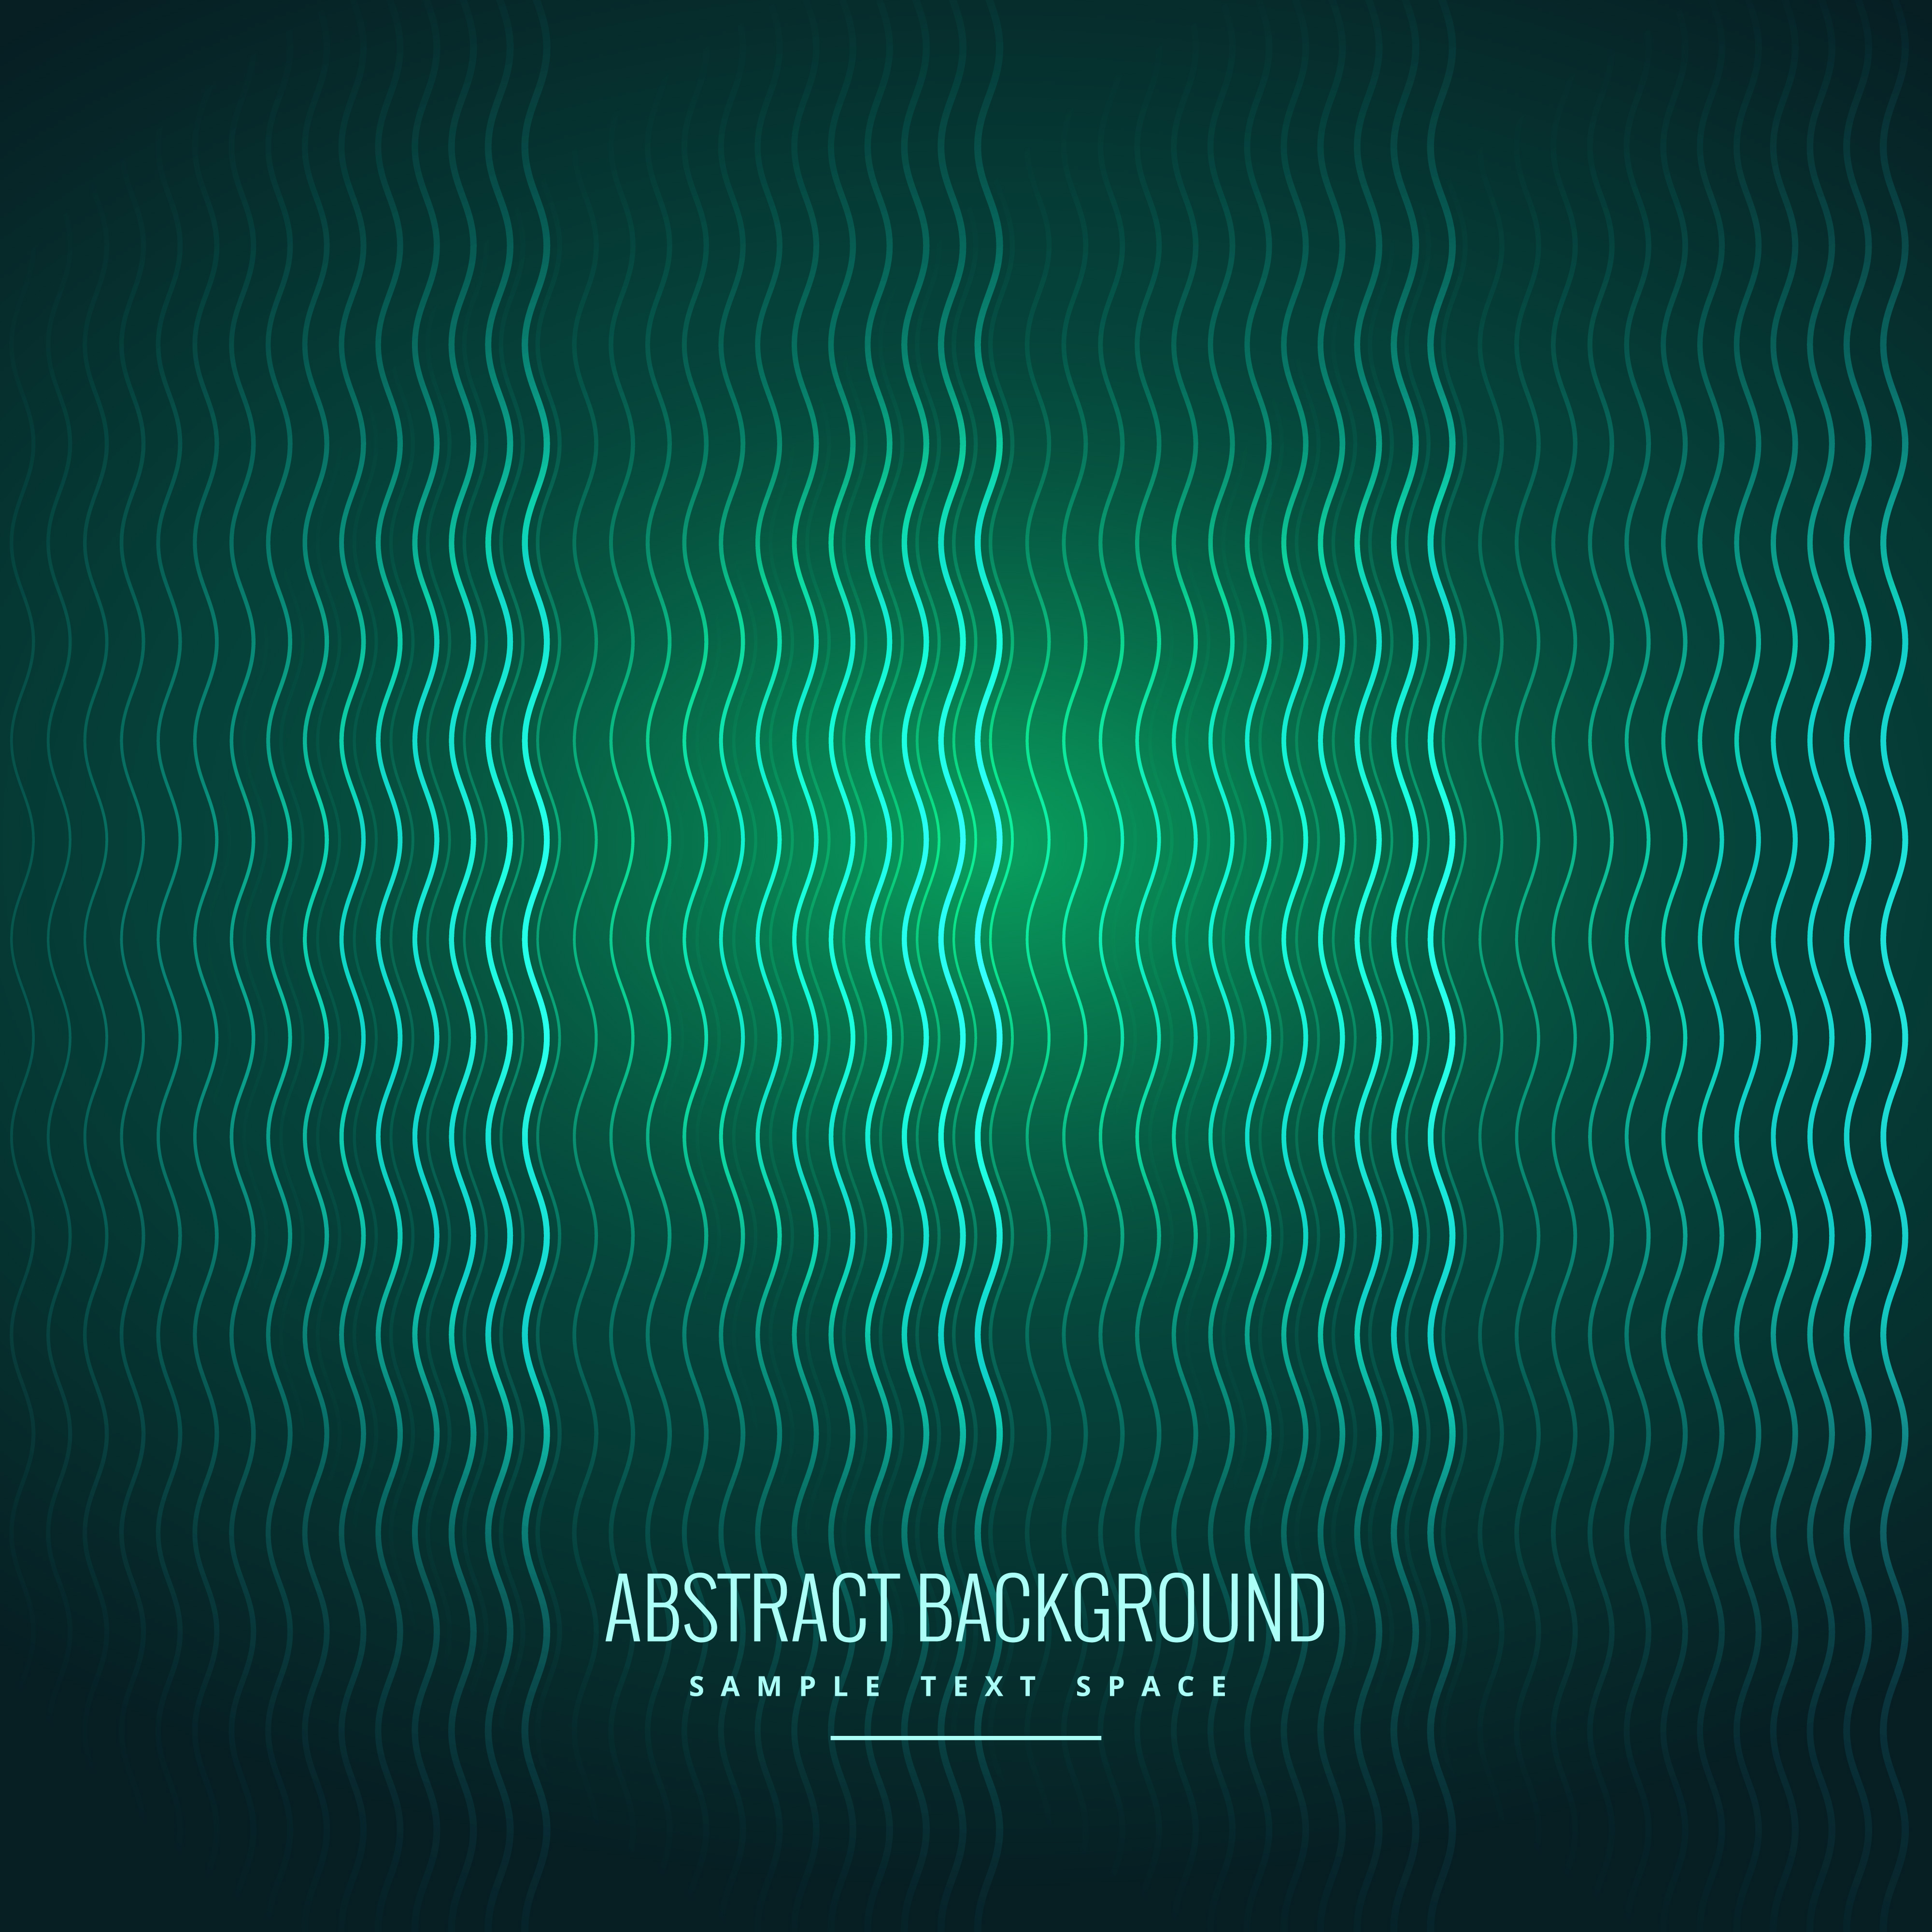 abstract wavy lines green background download free